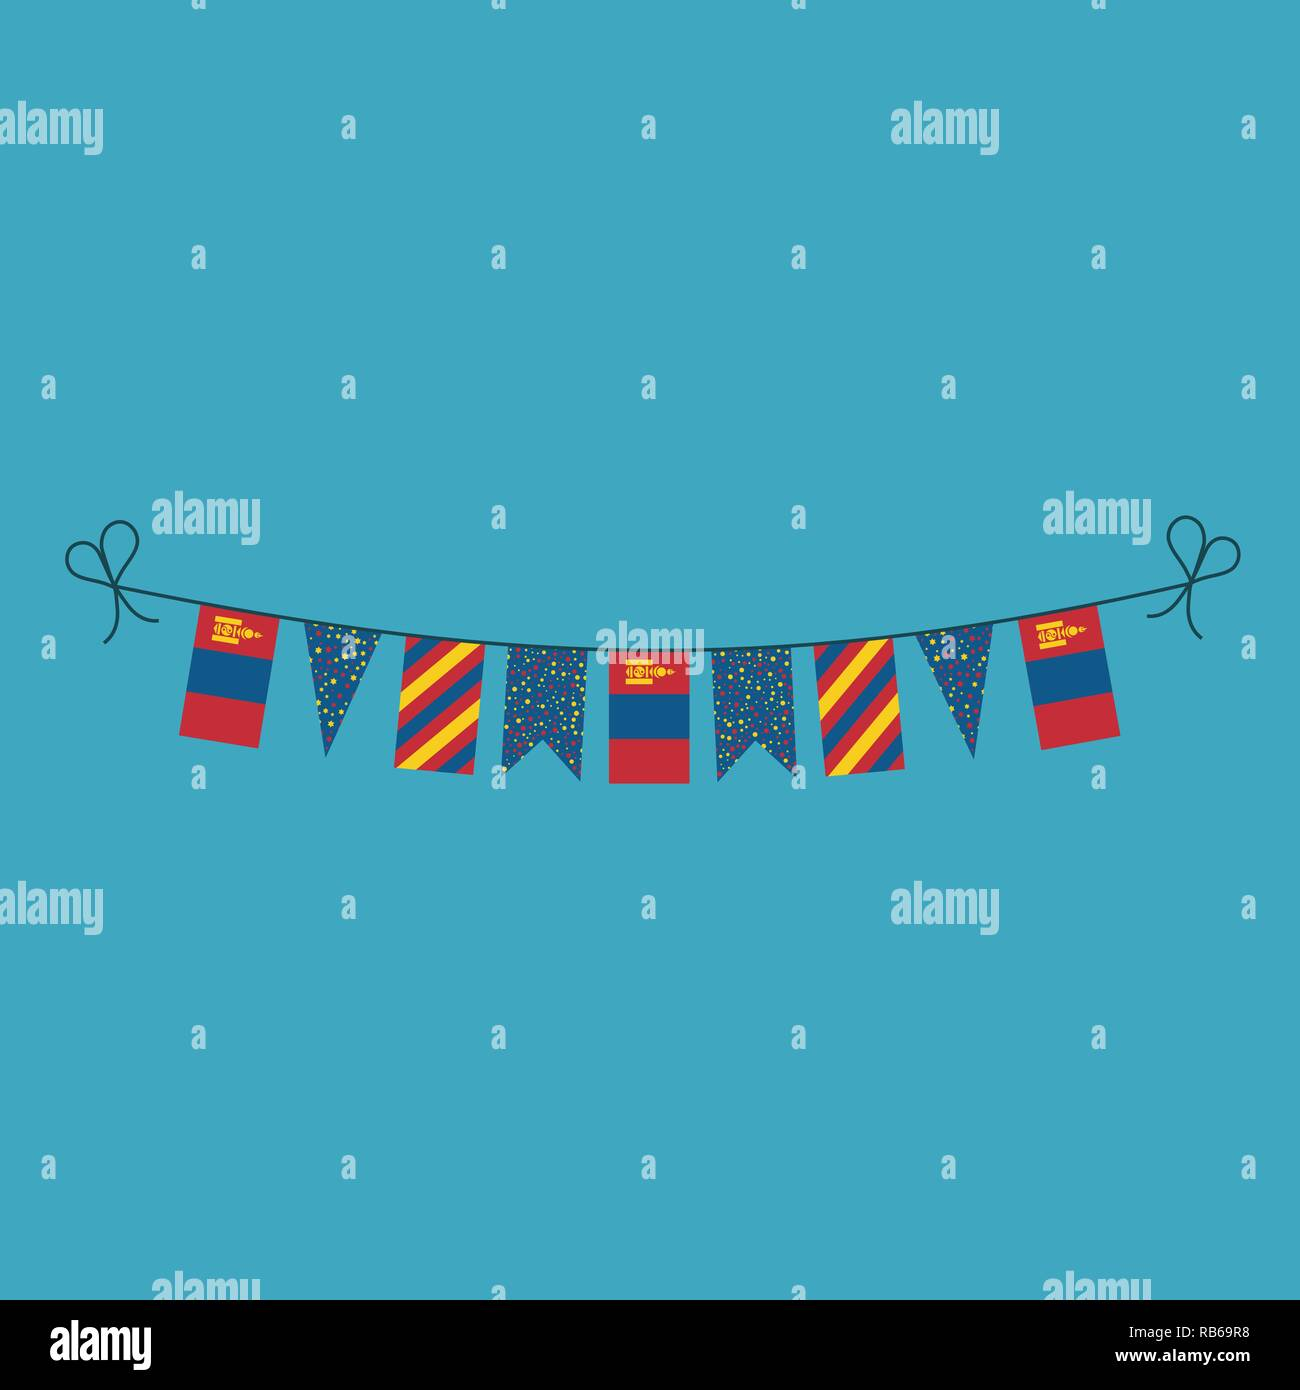 Decorations bunting flags for Mongolia national day holiday in flat design. Independence day or National day holiday concept. - Stock Vector